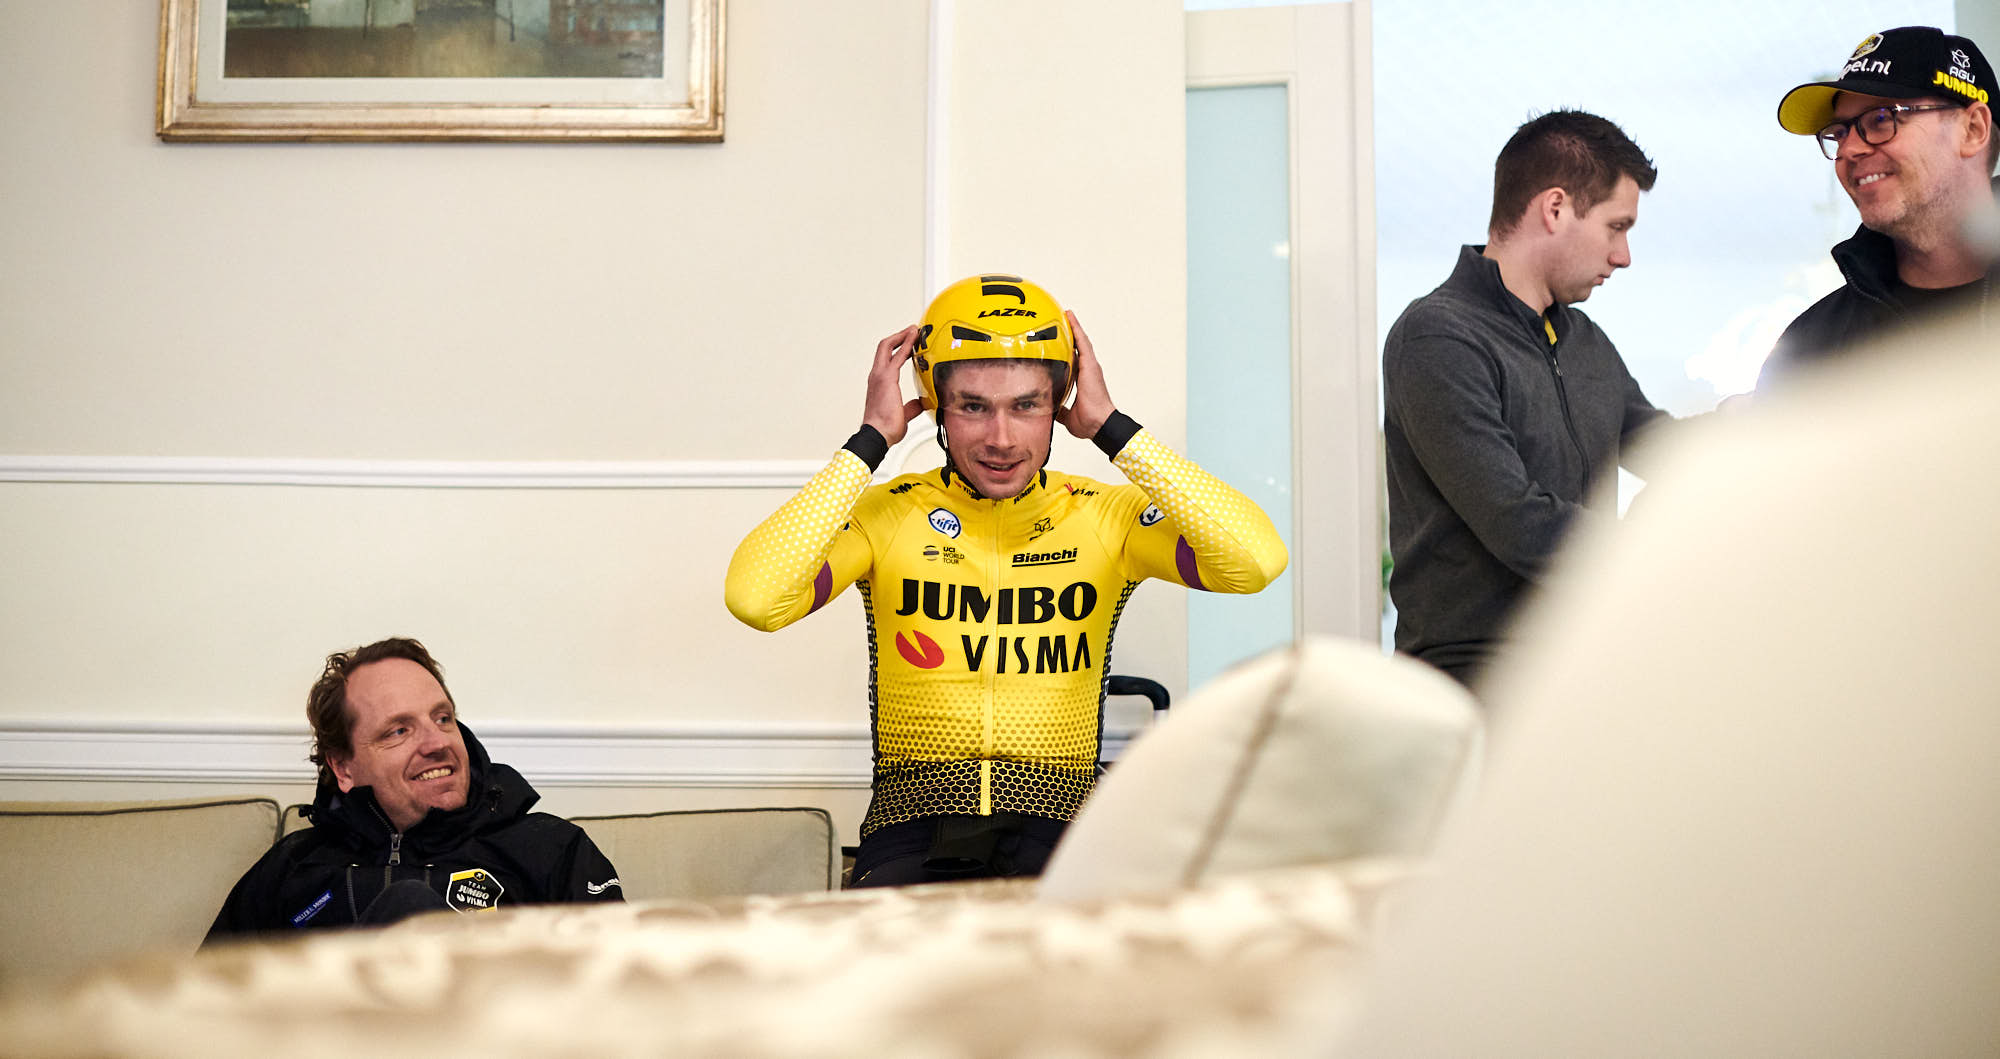 Slovenian cyclist Primoz Roglic putting on a time trial helmet